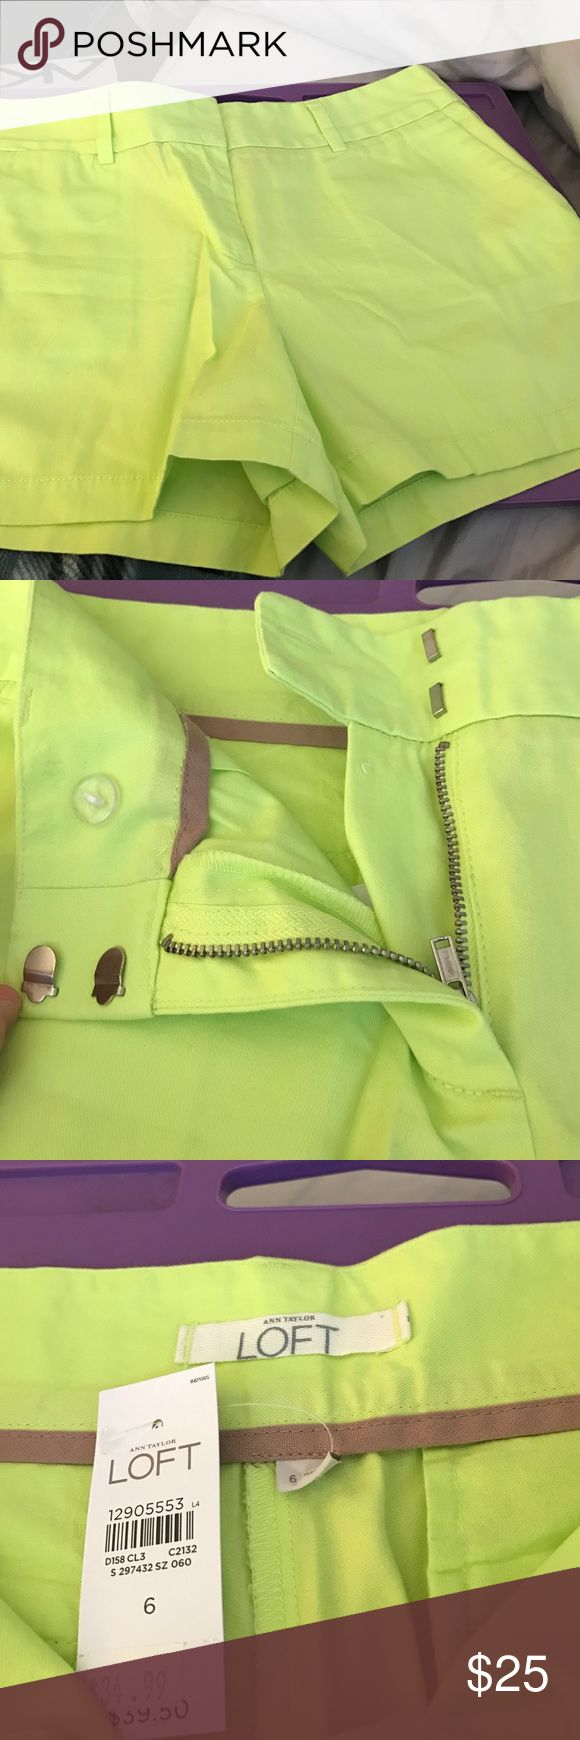 Neon Green NWT ATL shorts size 6 Ann Taylor loft size 6.  Come to mid-thigh. Brand new with tags! LOFT Shorts